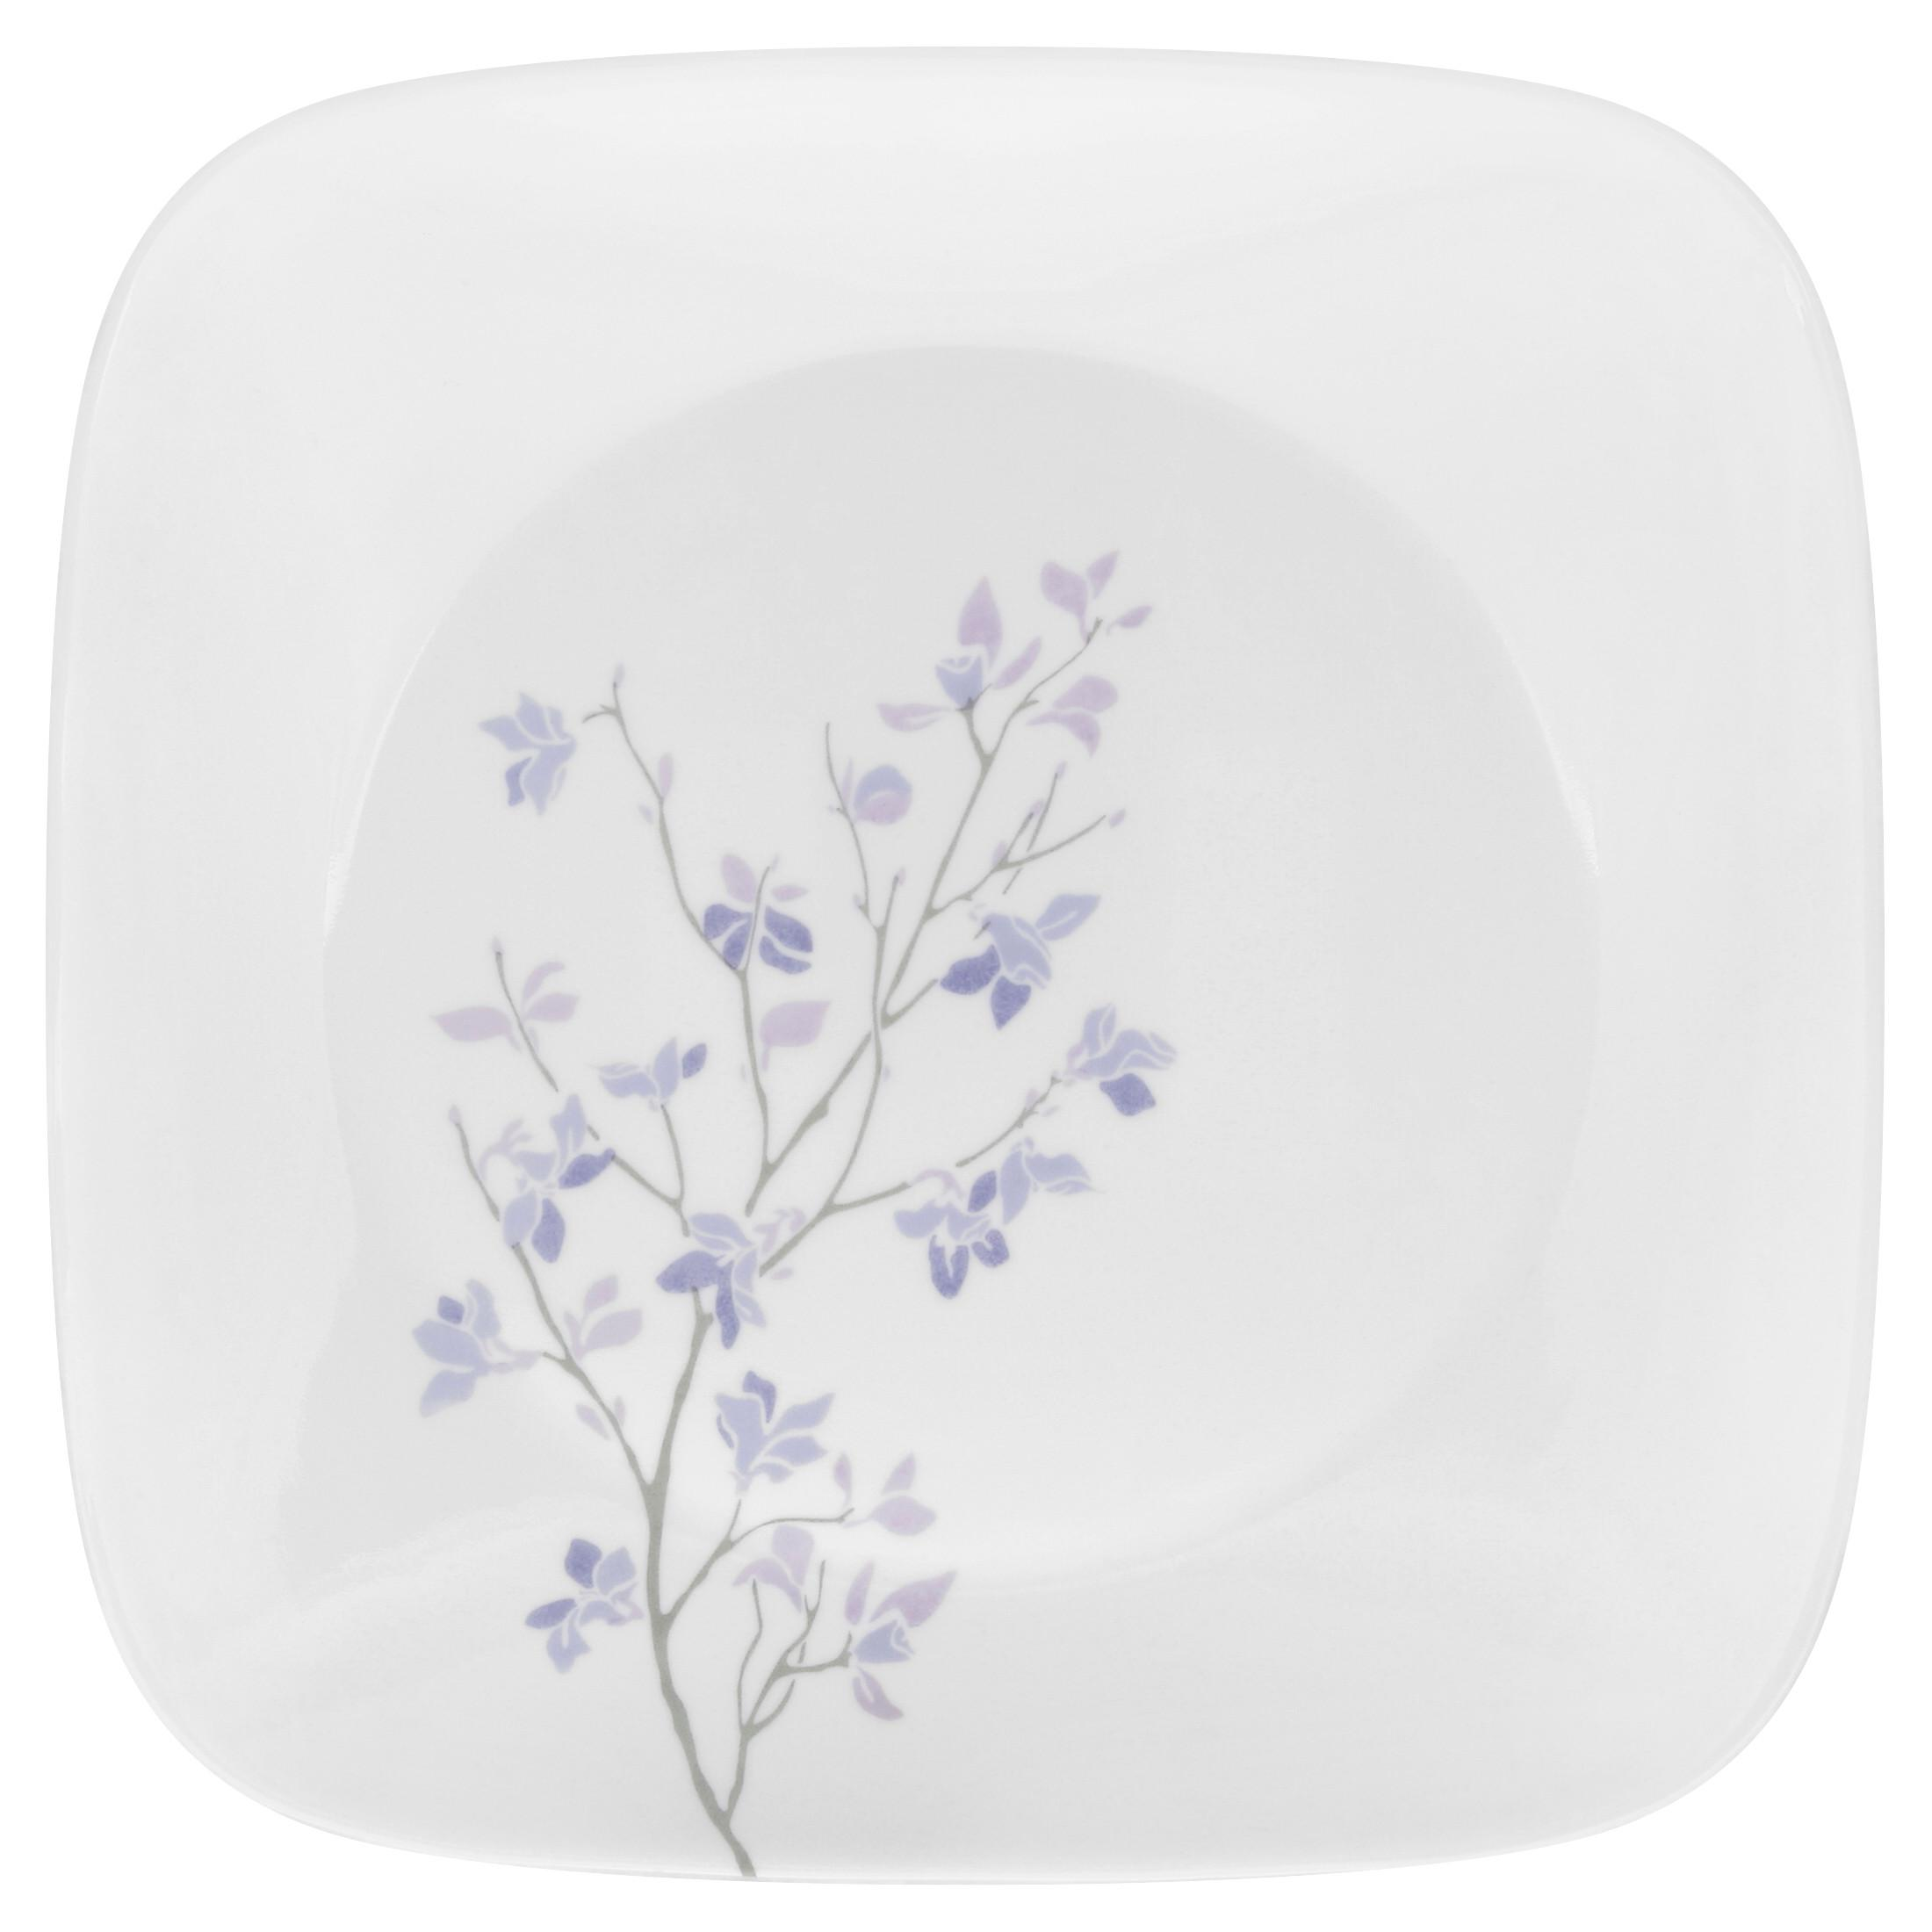 Corelle glass dinnerware is designed to make an impact and take one. Our patterns are inspired by the latest trends in fashion and home decor, delivering a variety .